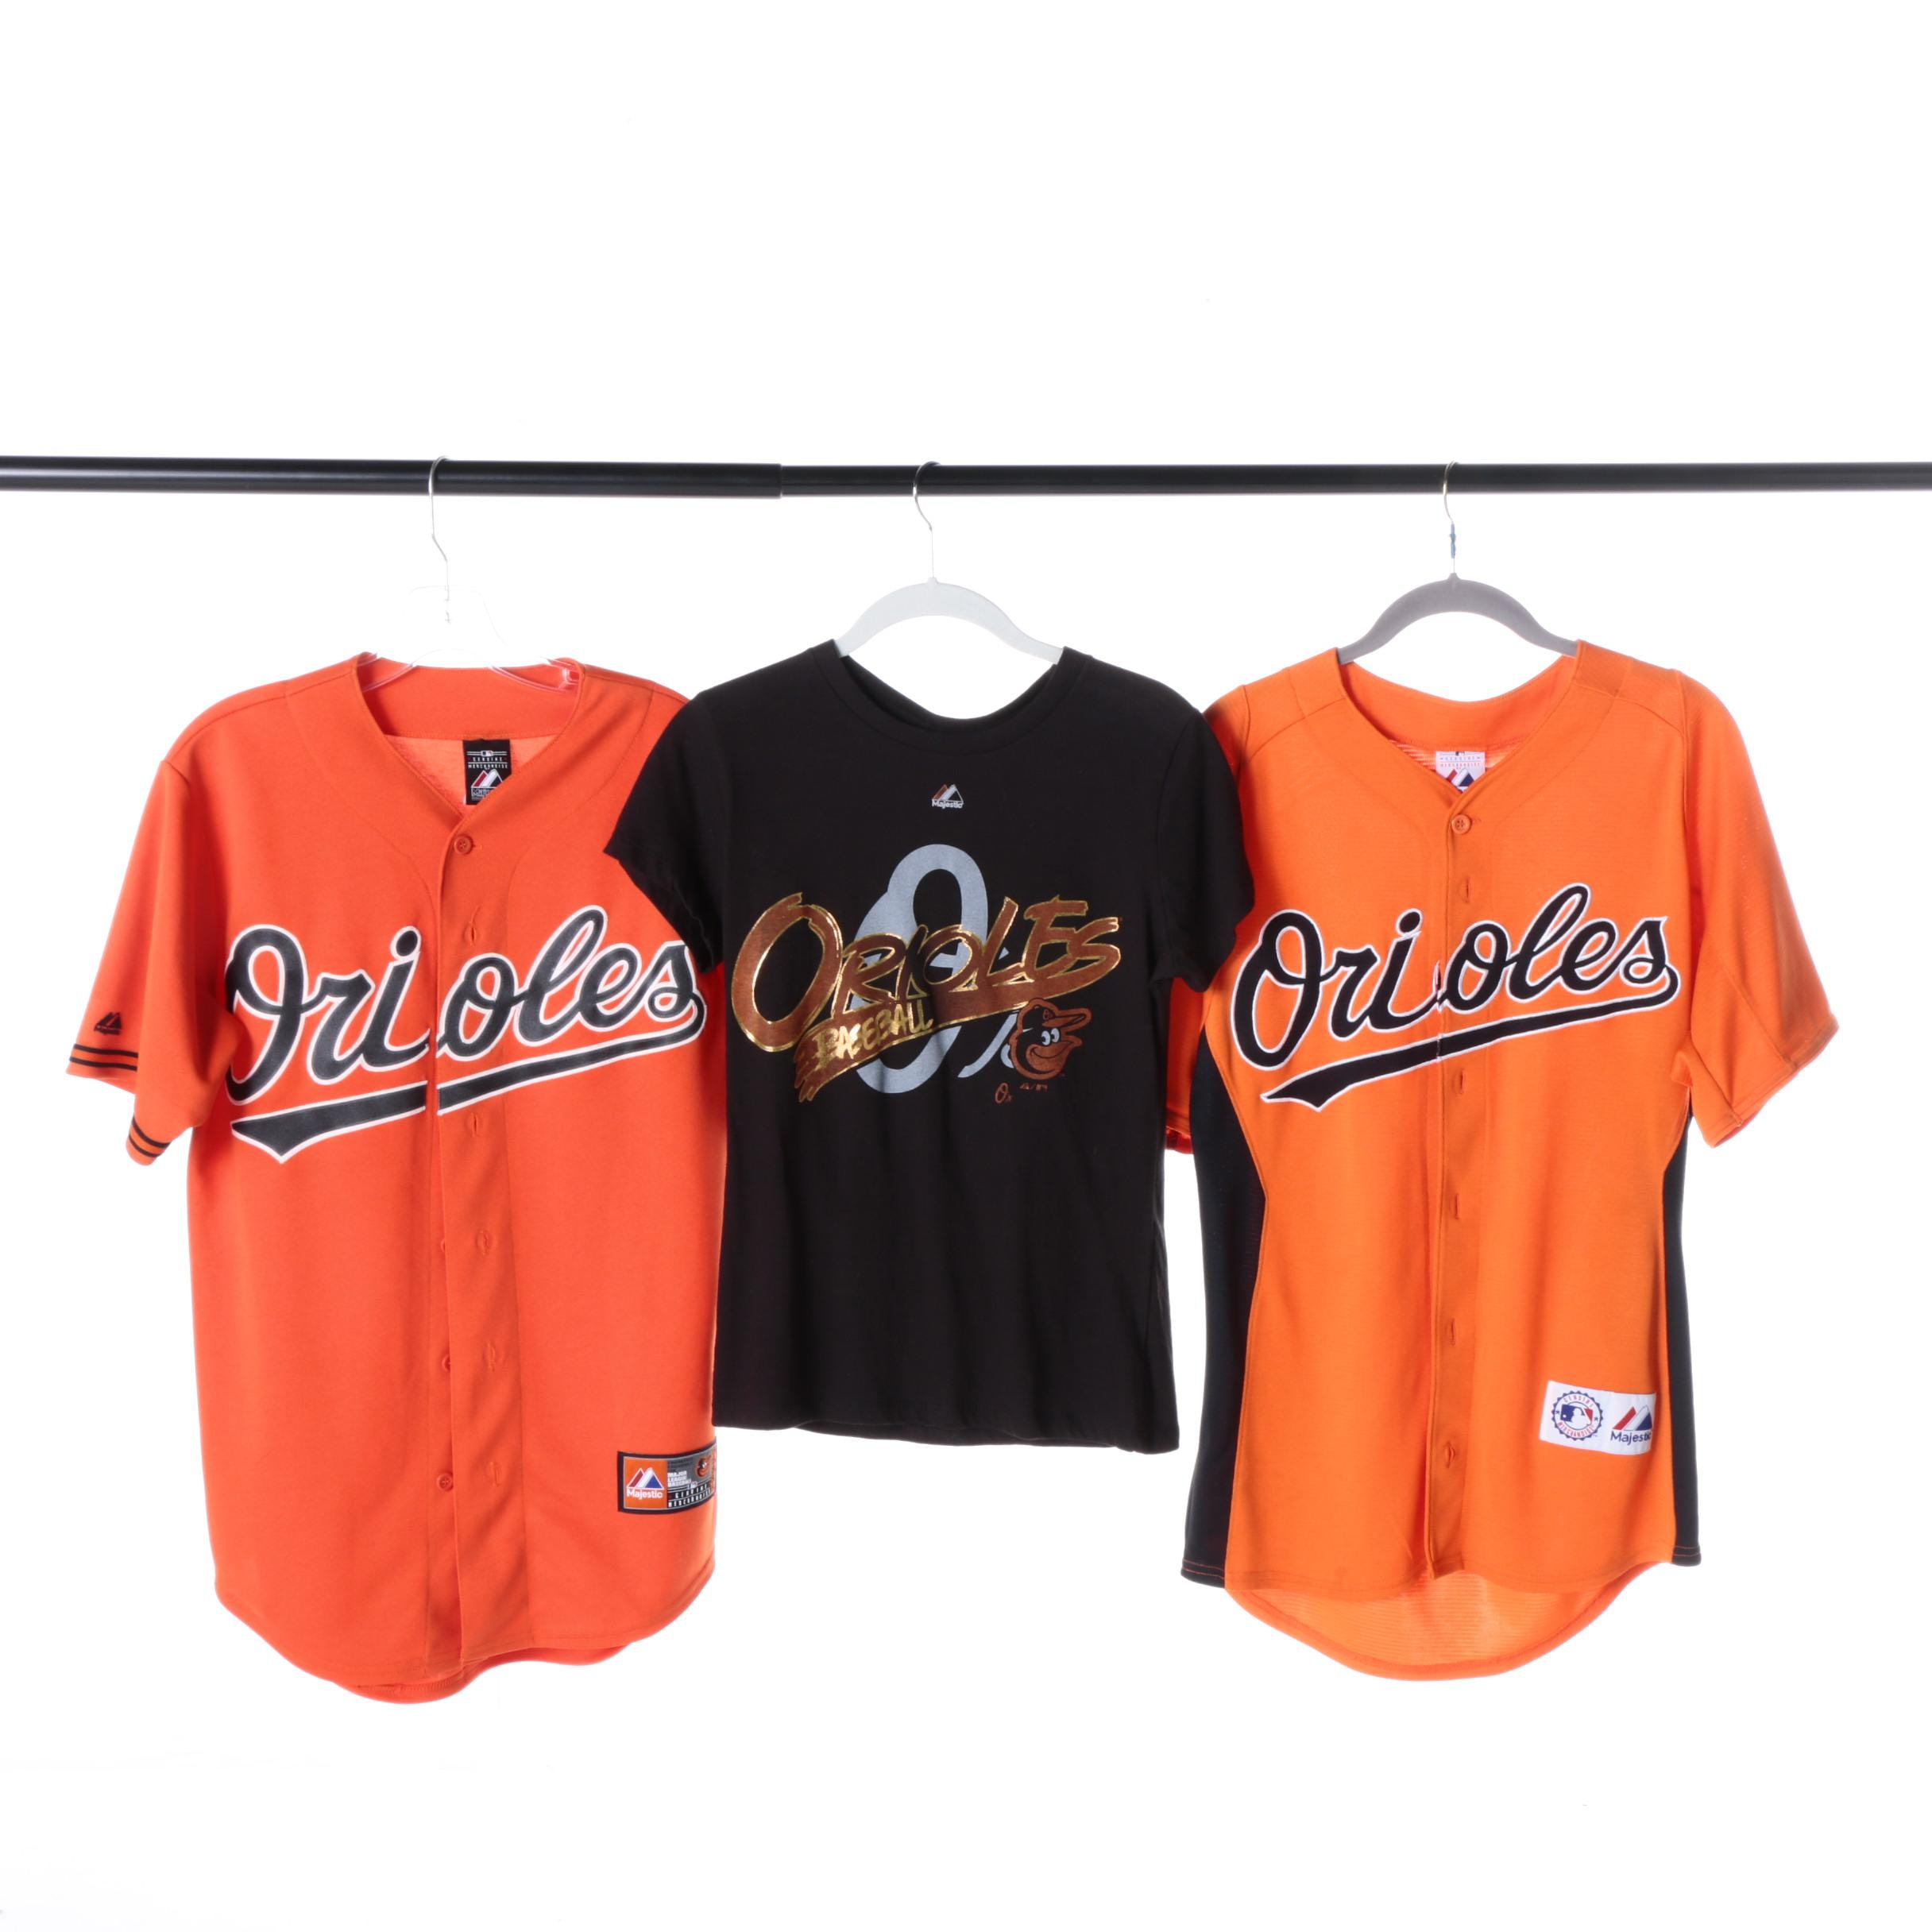 Majestic Women's Baltimore Orioles Shirts